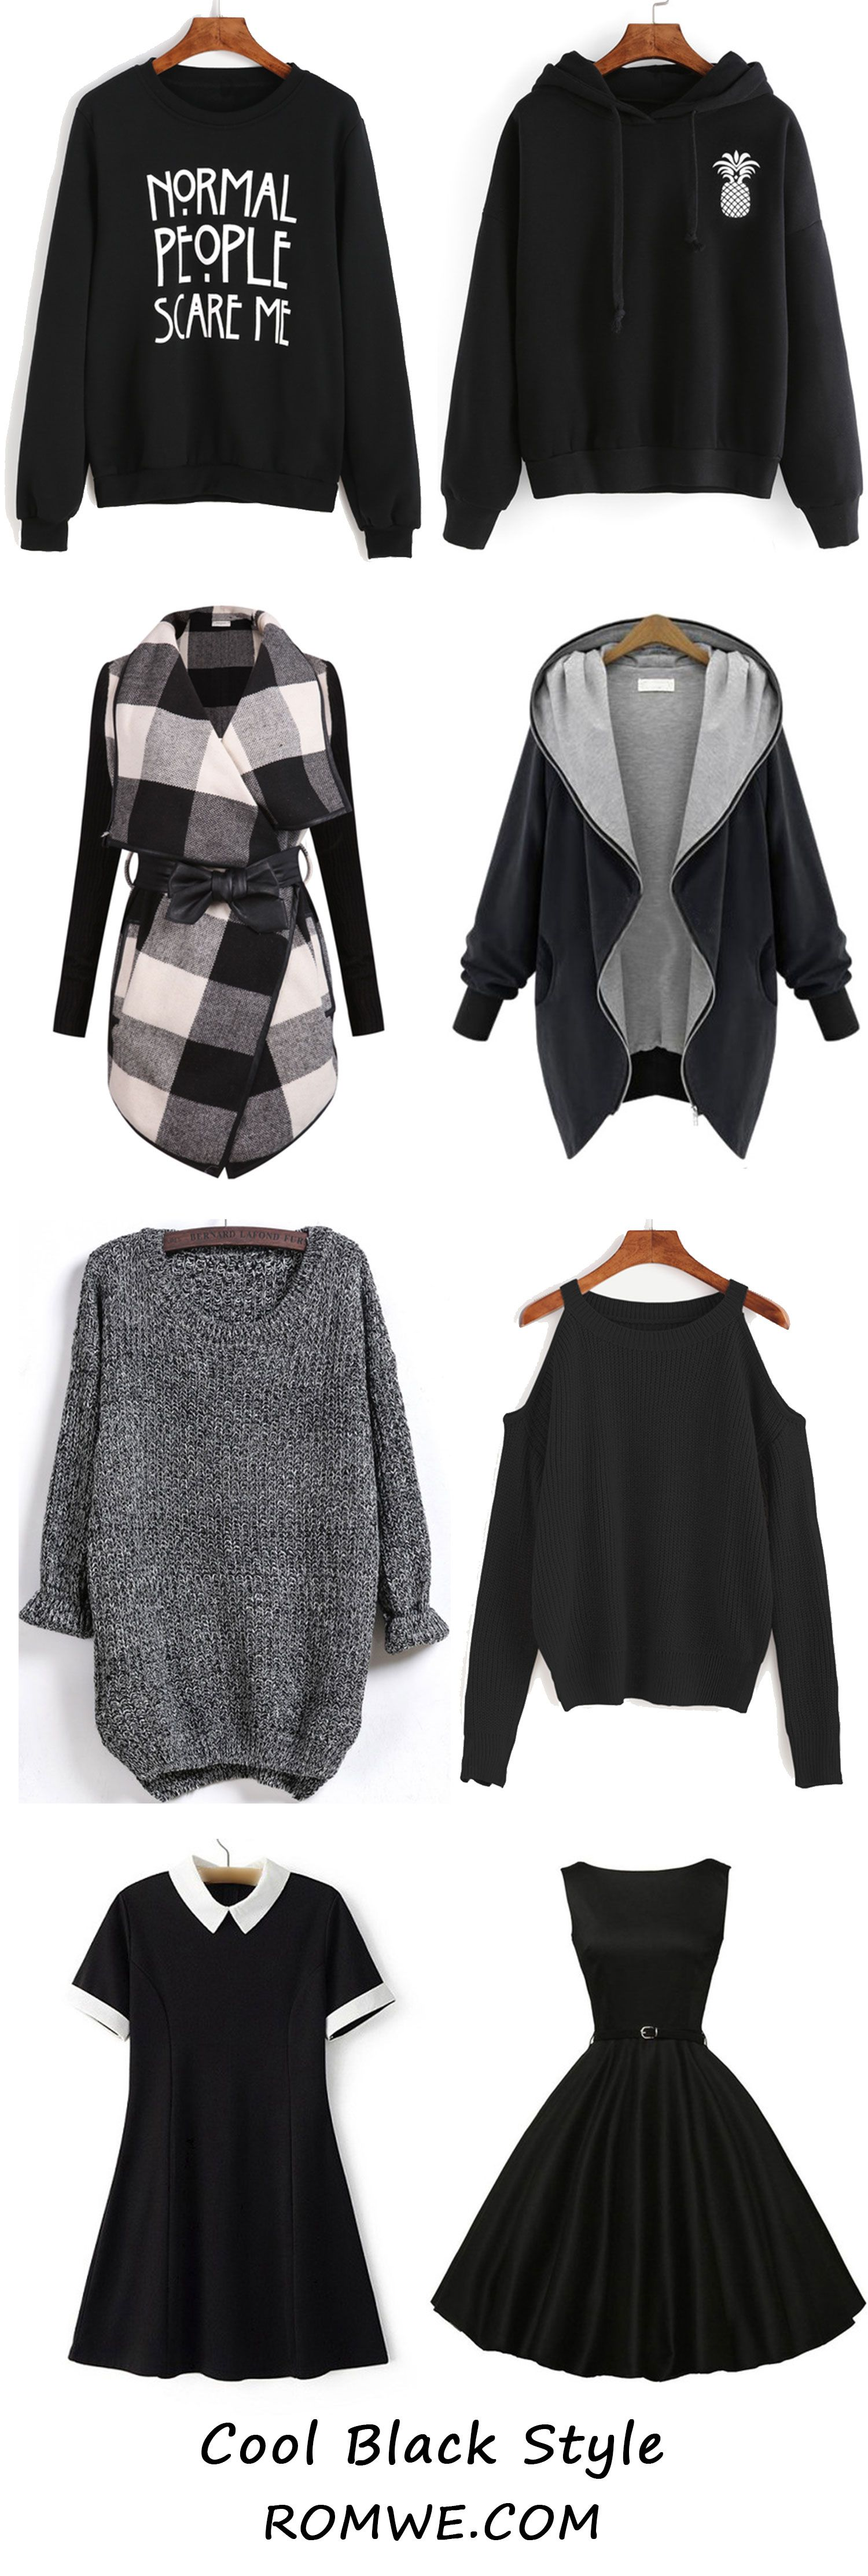 Cool Black - Sweatshirts, Sweaters, Dresses and Coats from romwe ...